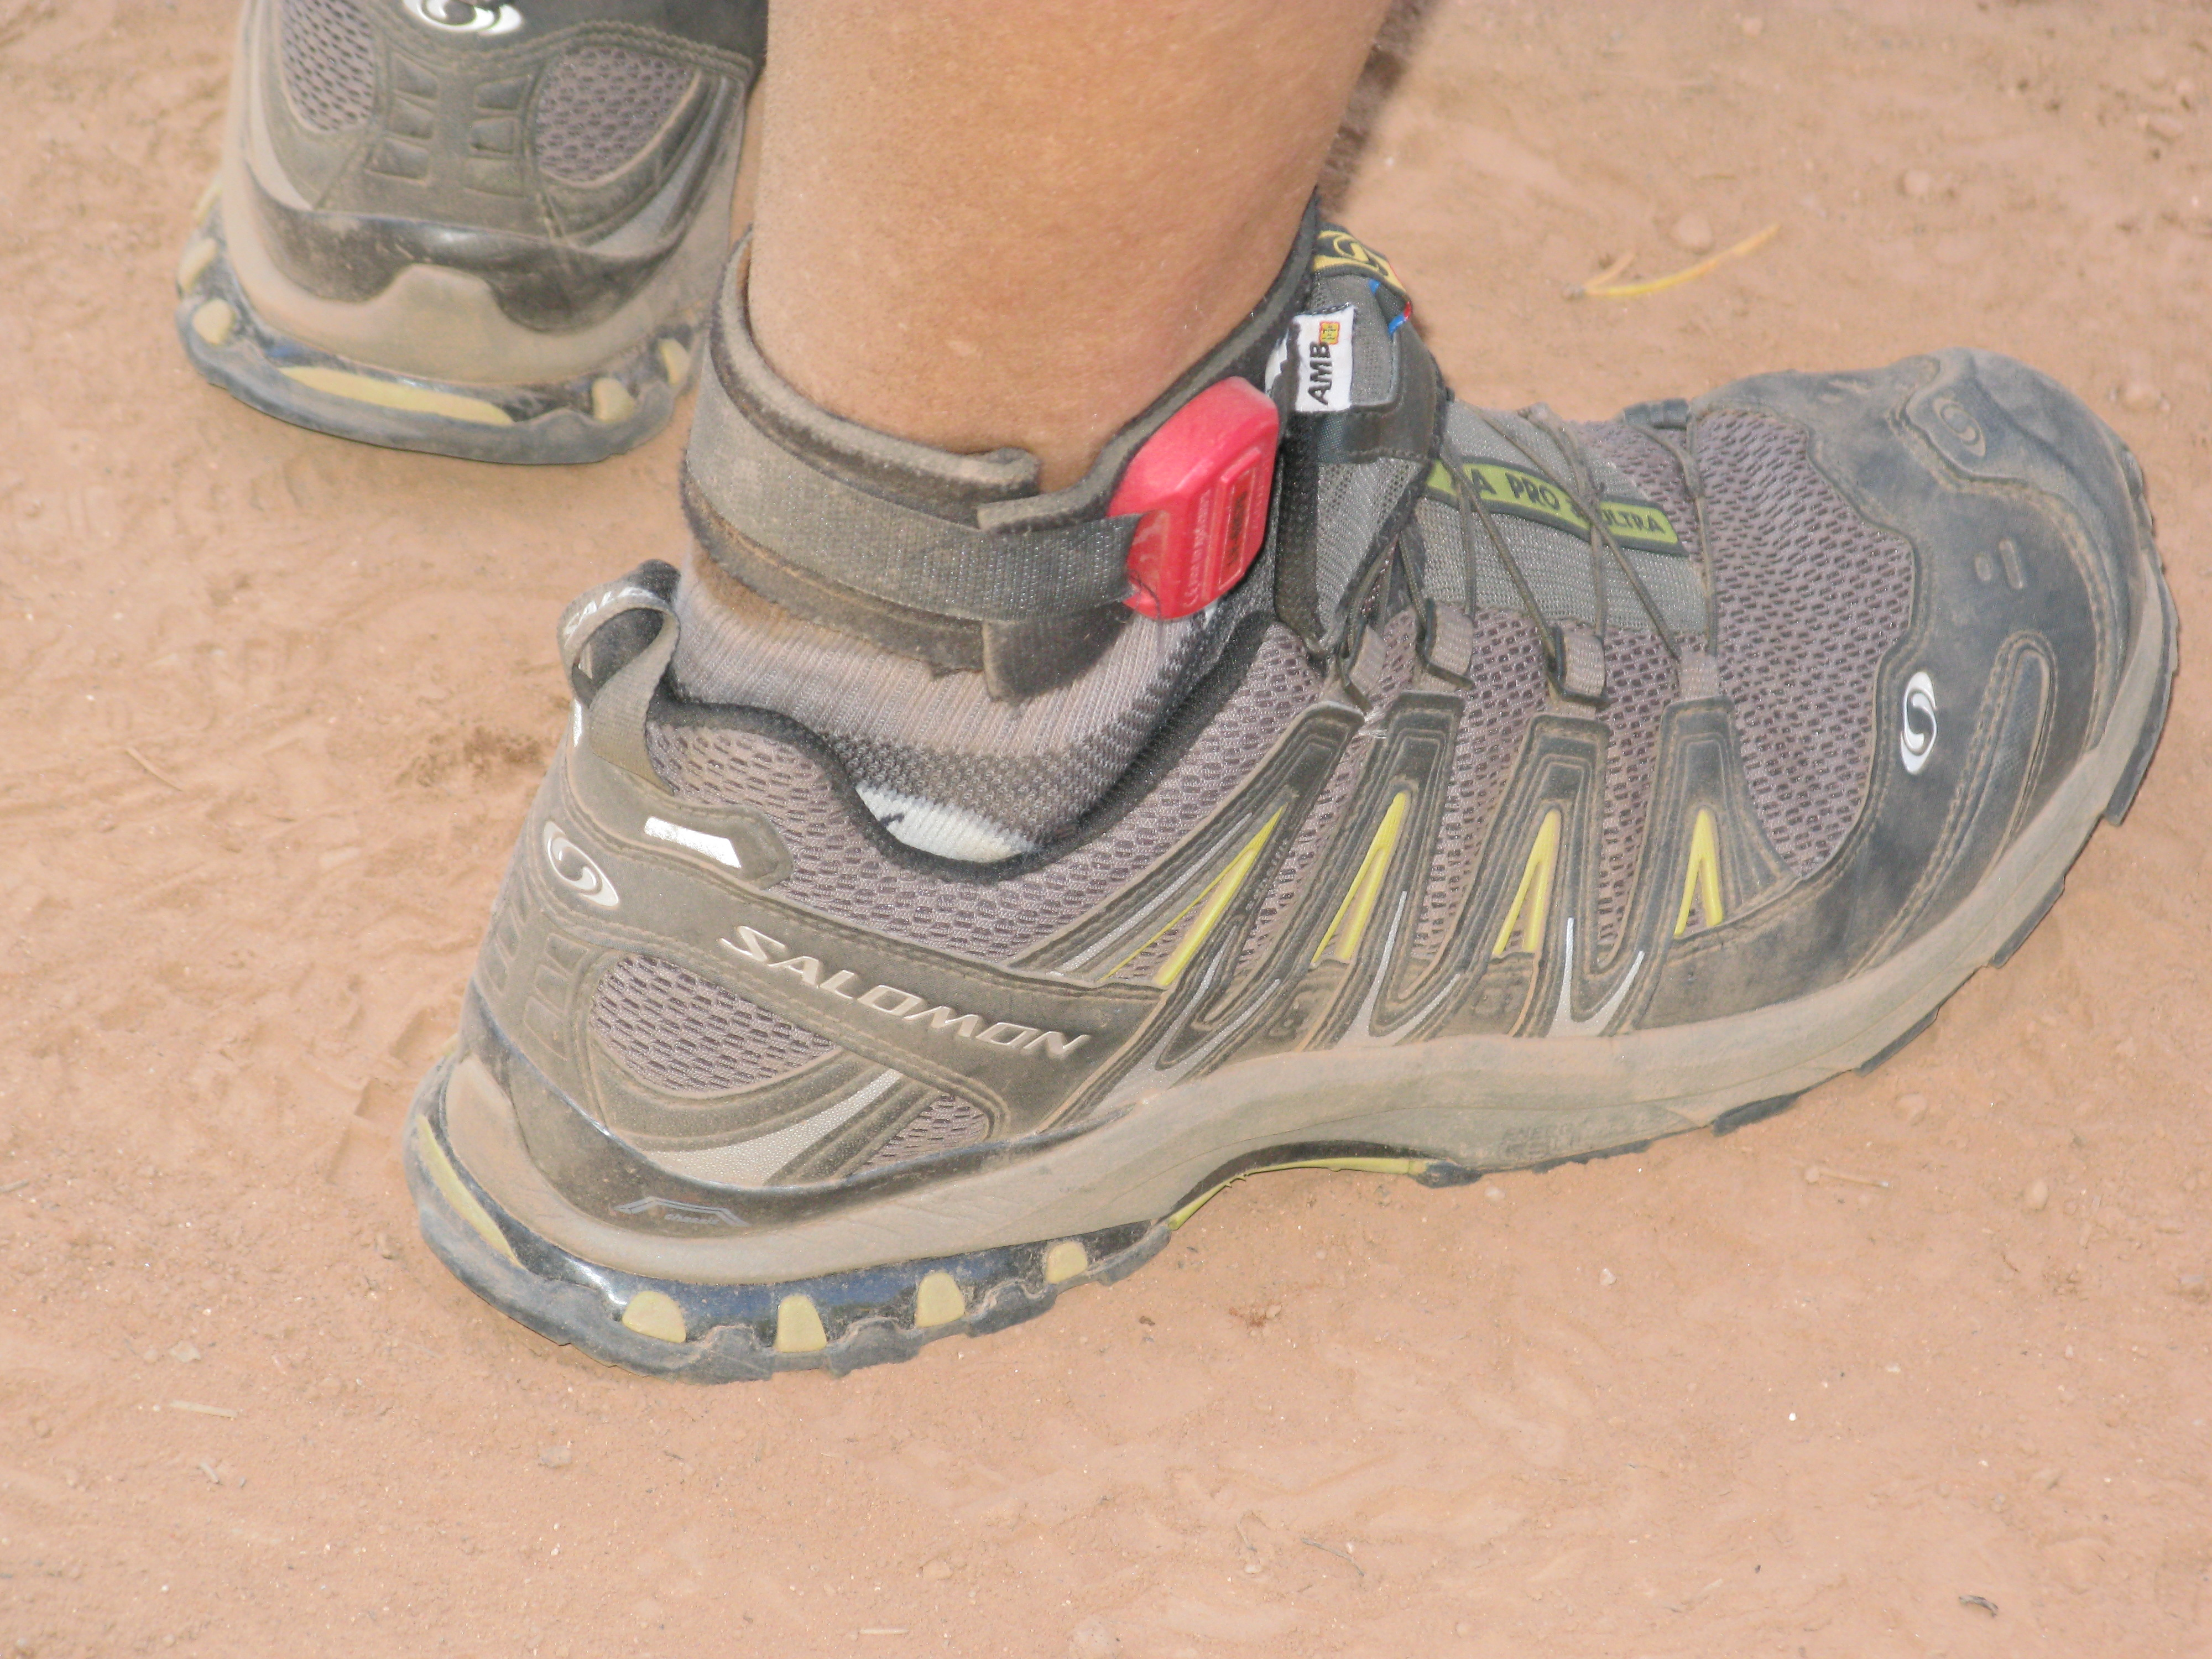 Trail Running Shoes With The Best Support